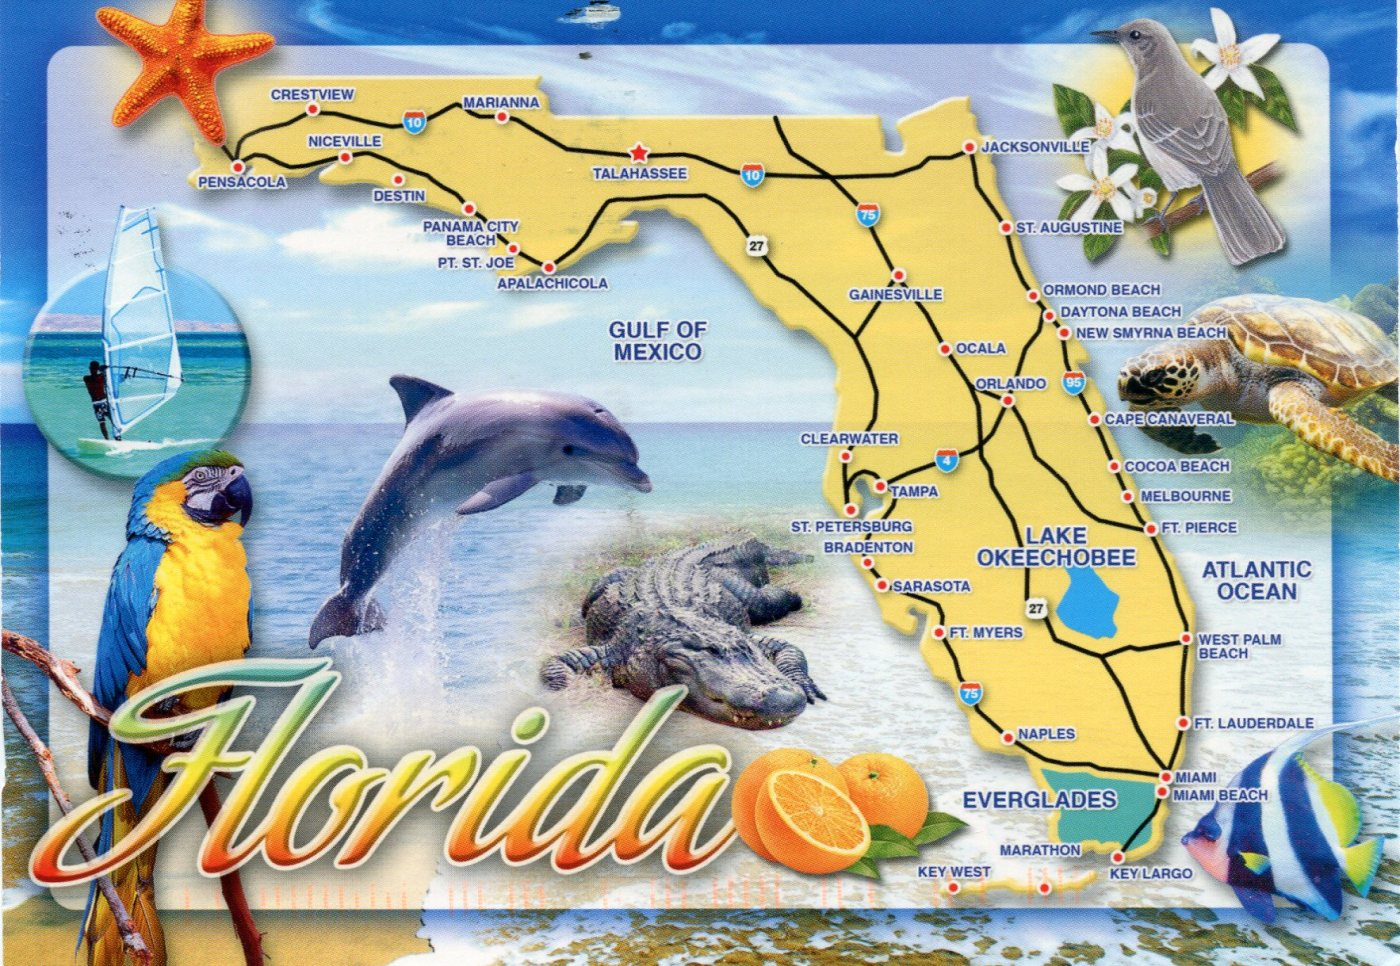 USA Places And Geographic Features Map Maps For The Classroom USA - Florida map key west